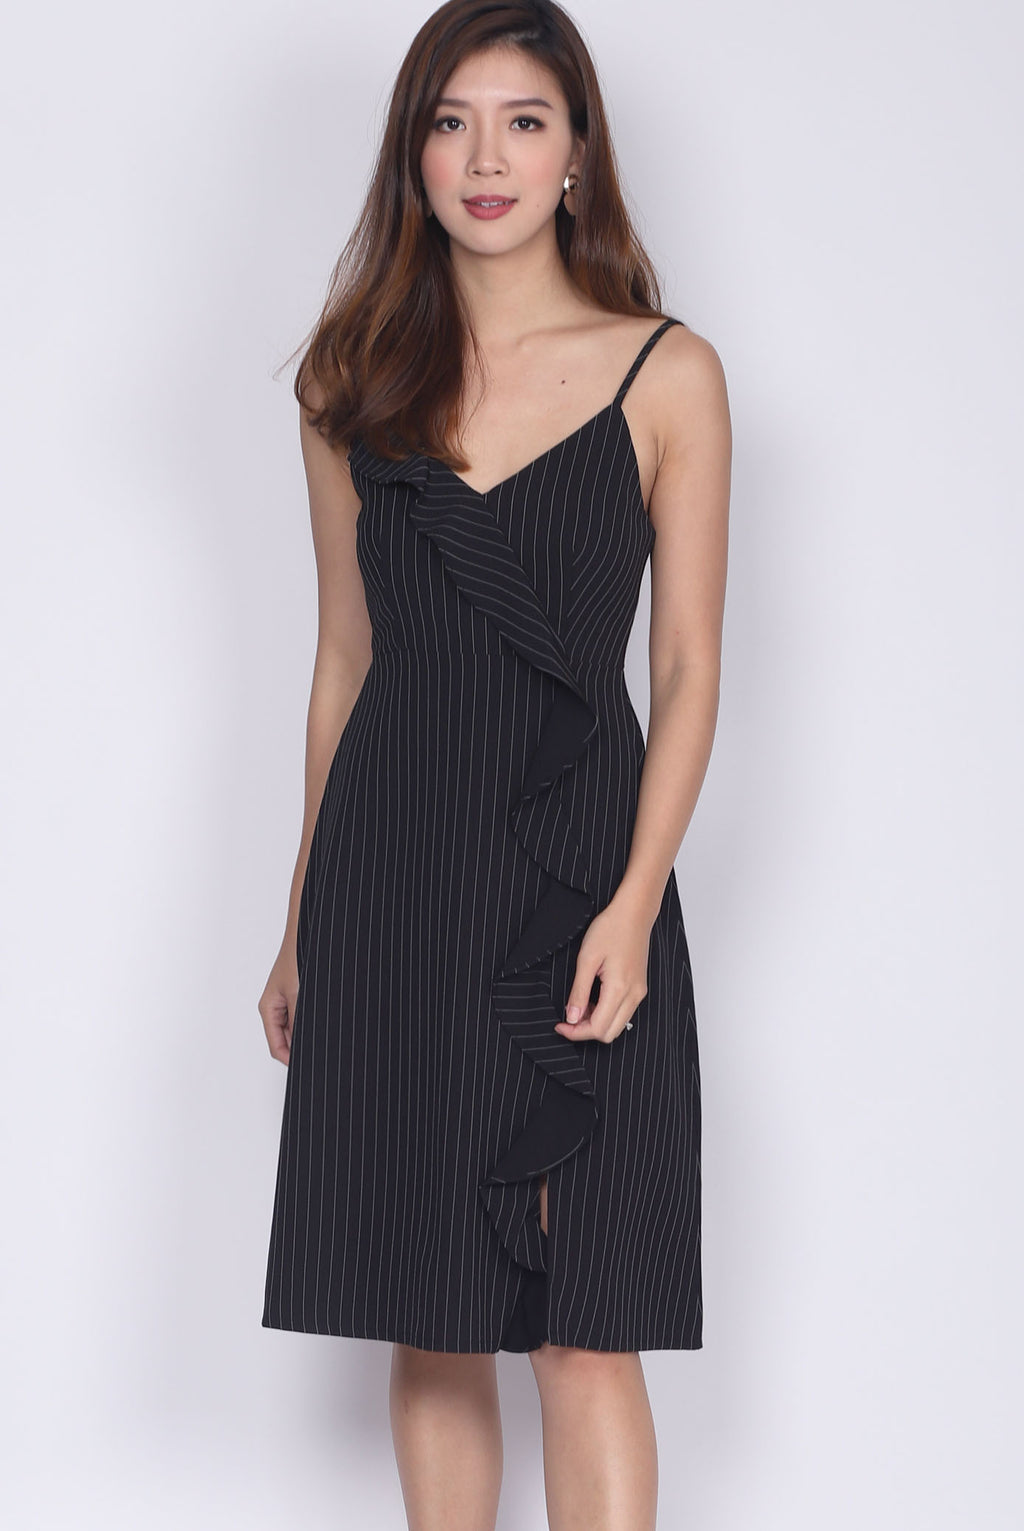 Huette Ruffle Down Spag Dress in Black Stripes